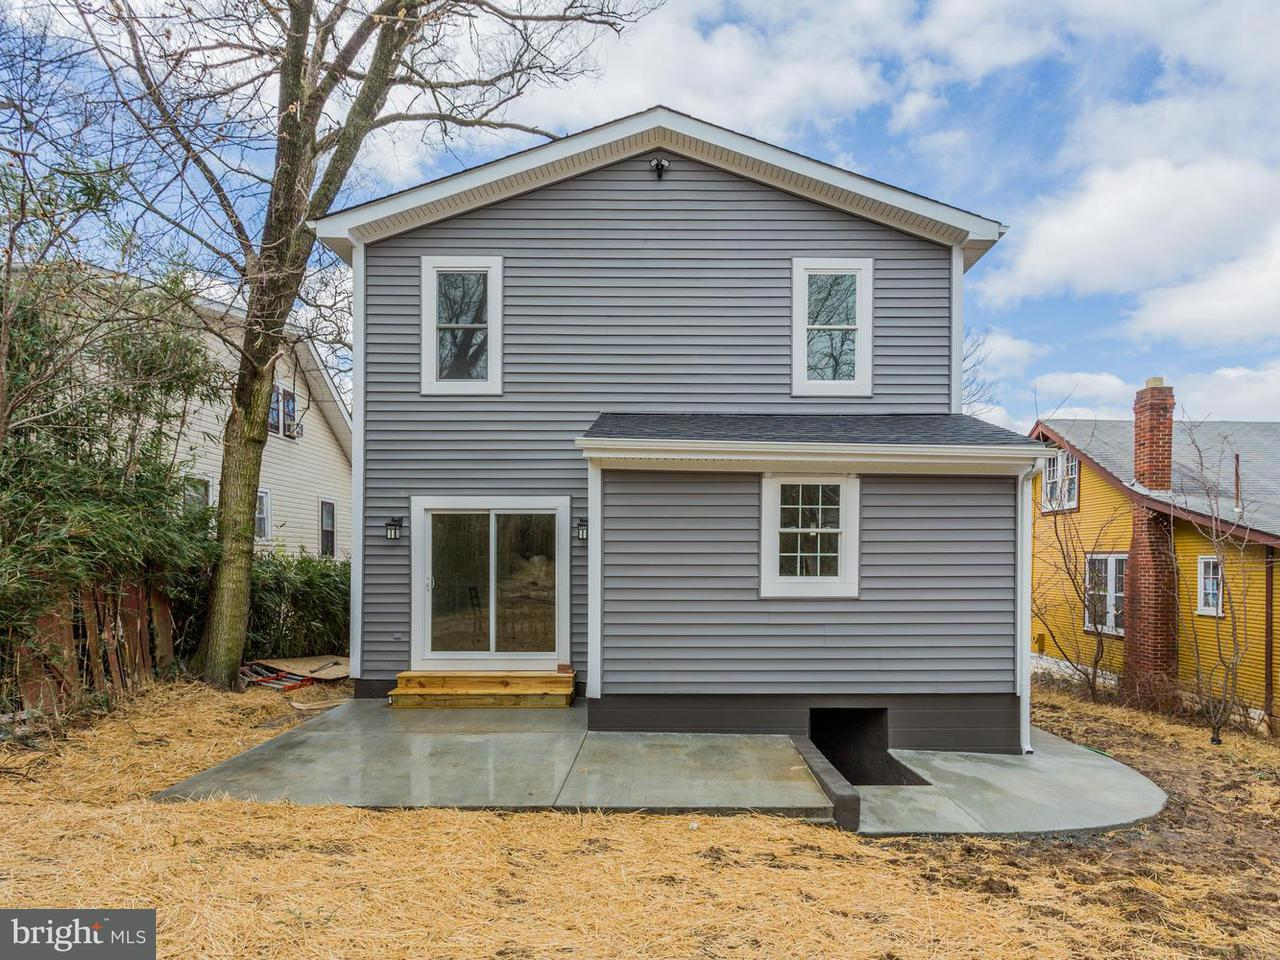 Single Family Home for Sale at 4107 30TH Street 4107 30TH Street Mount Rainier, Maryland 20712 United States